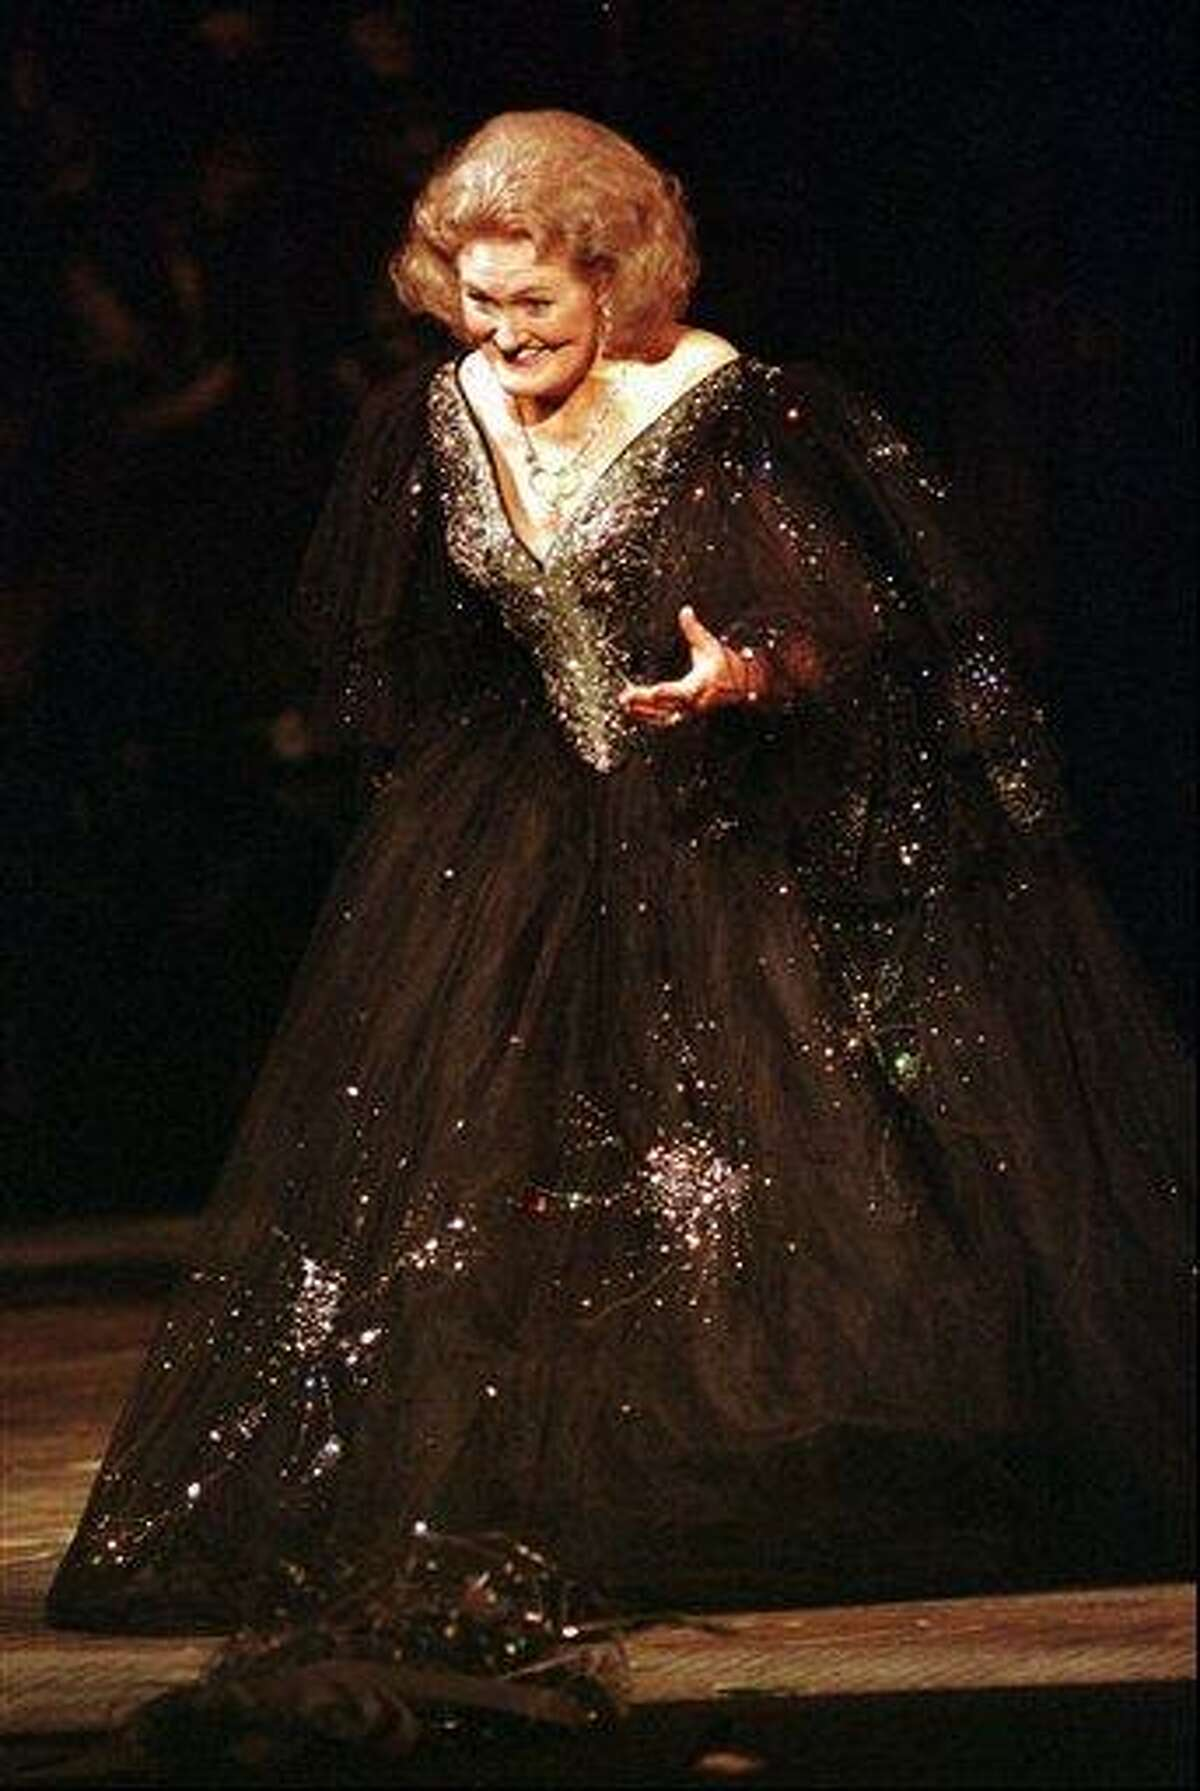 FILE - In this Sept. 5, 1997 file photo, Australian opera soprano Joan Sutherland gestures her appreciation for flowers thrown onto the stage during the Gala Concert in celebration of the reopening of the San Francisco War Memorial Opera House. A memorial service for opera star Joan Sutherland will be held at Westminster Abbey in London on Tuesday, Feb. 15, 2011. (AP)